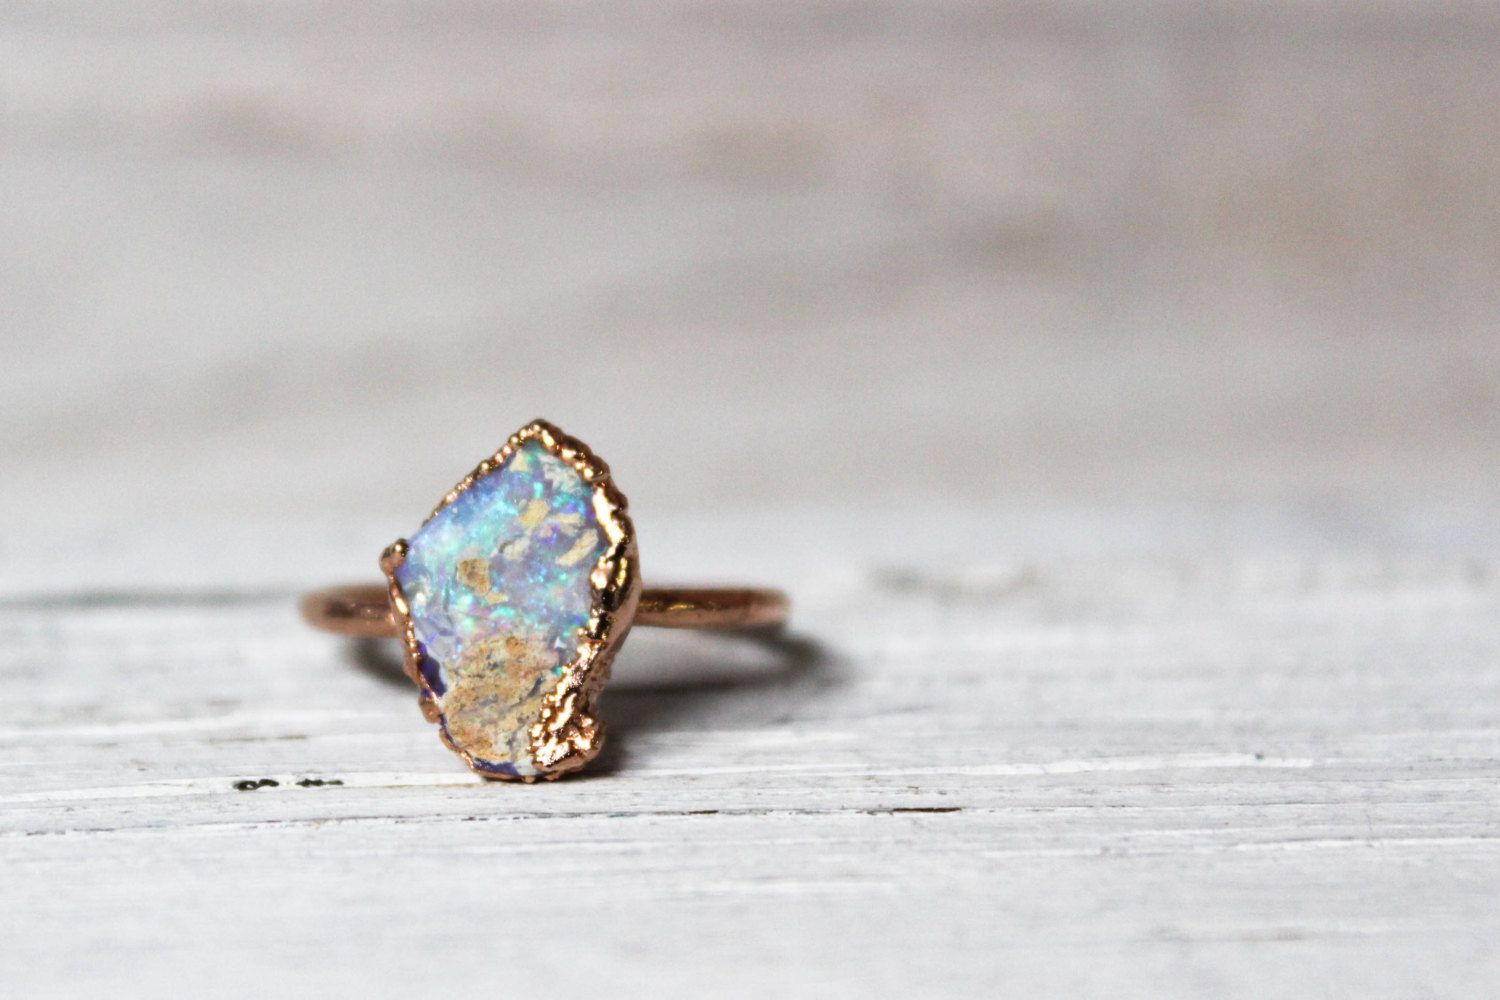 Raw Opal Engagement Ring Natural Australian Bohemian Stone October Birthstone Crystal In Rose Gold Created